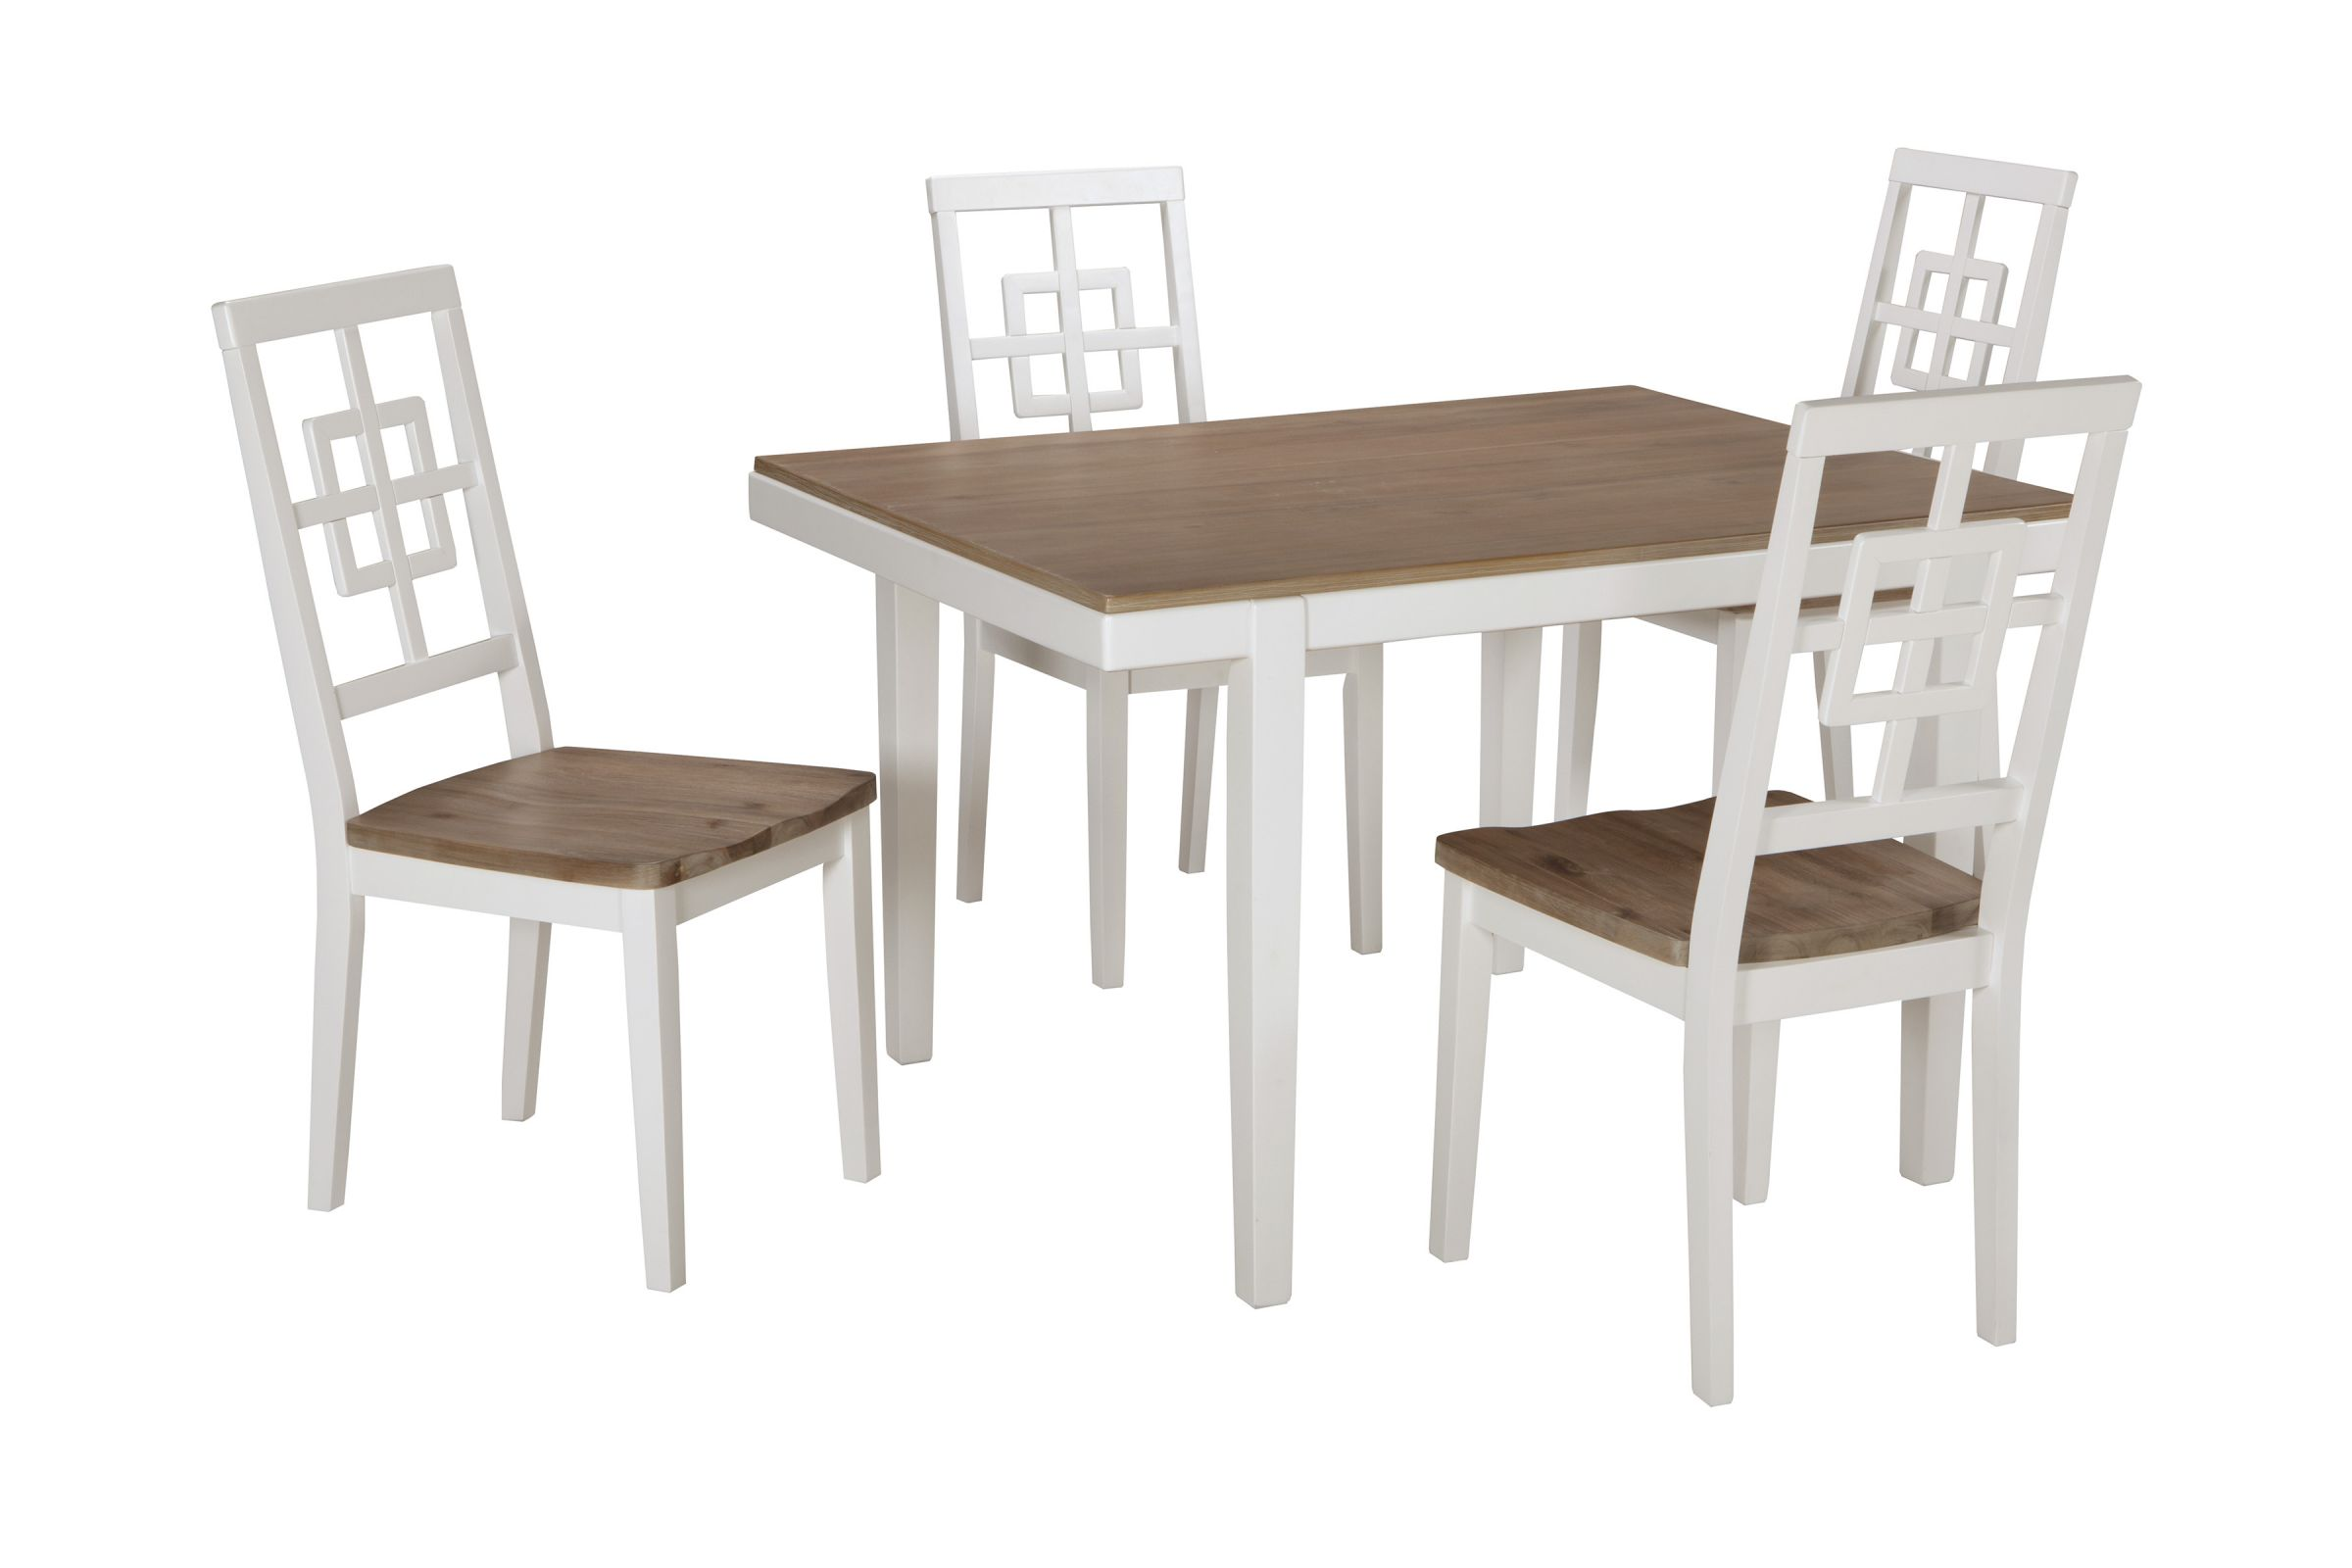 Brovada Dining Table 4 Chairs By Ashley Online Only 488 99 Free Shipping